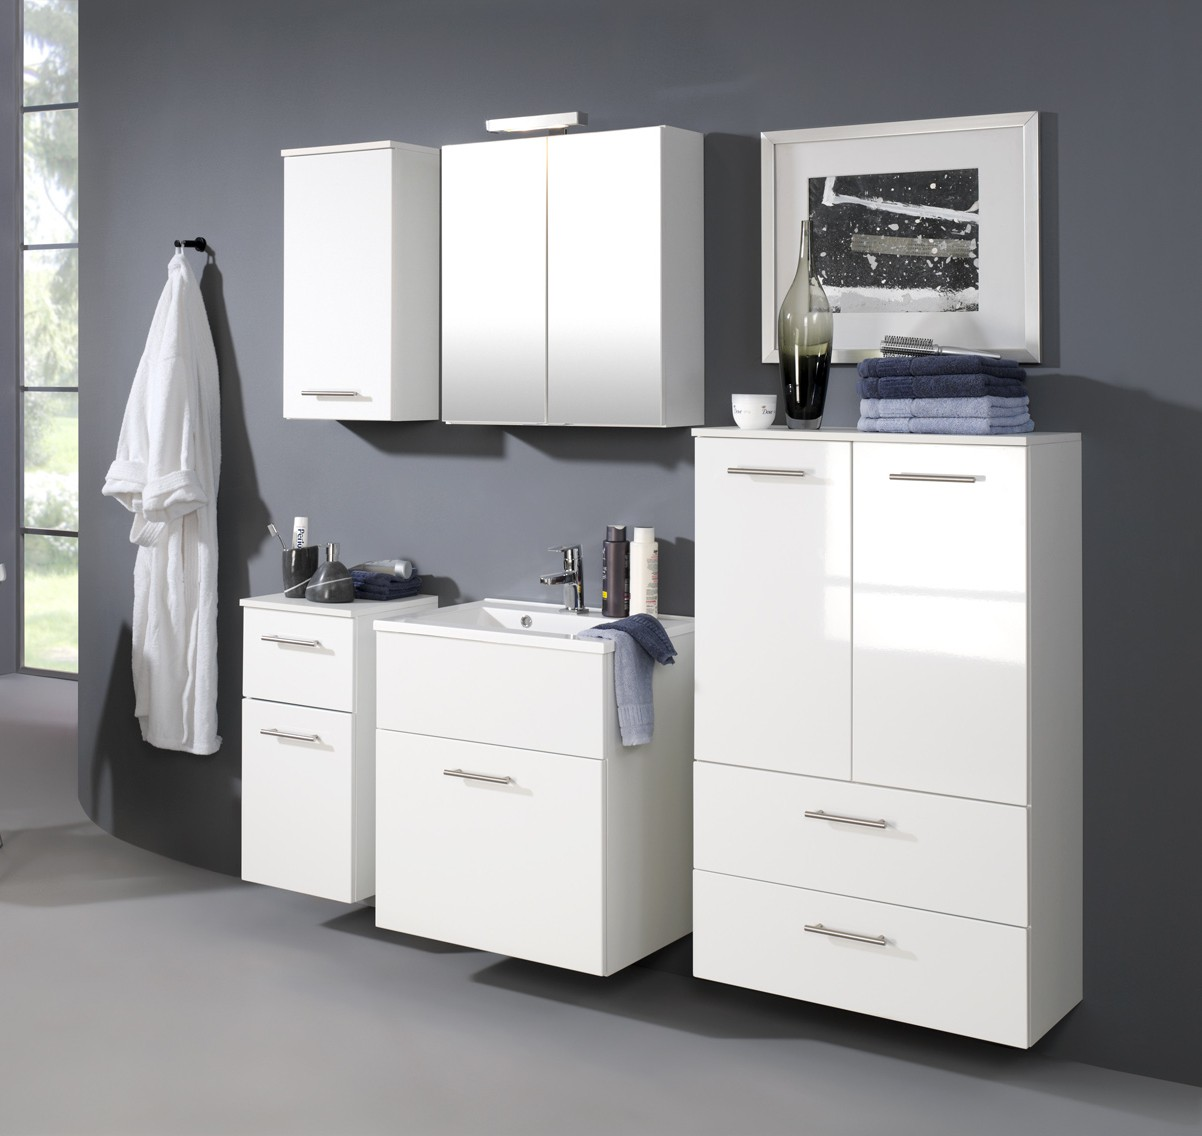 neu badezimmer midischrank blanco midi highboard. Black Bedroom Furniture Sets. Home Design Ideas